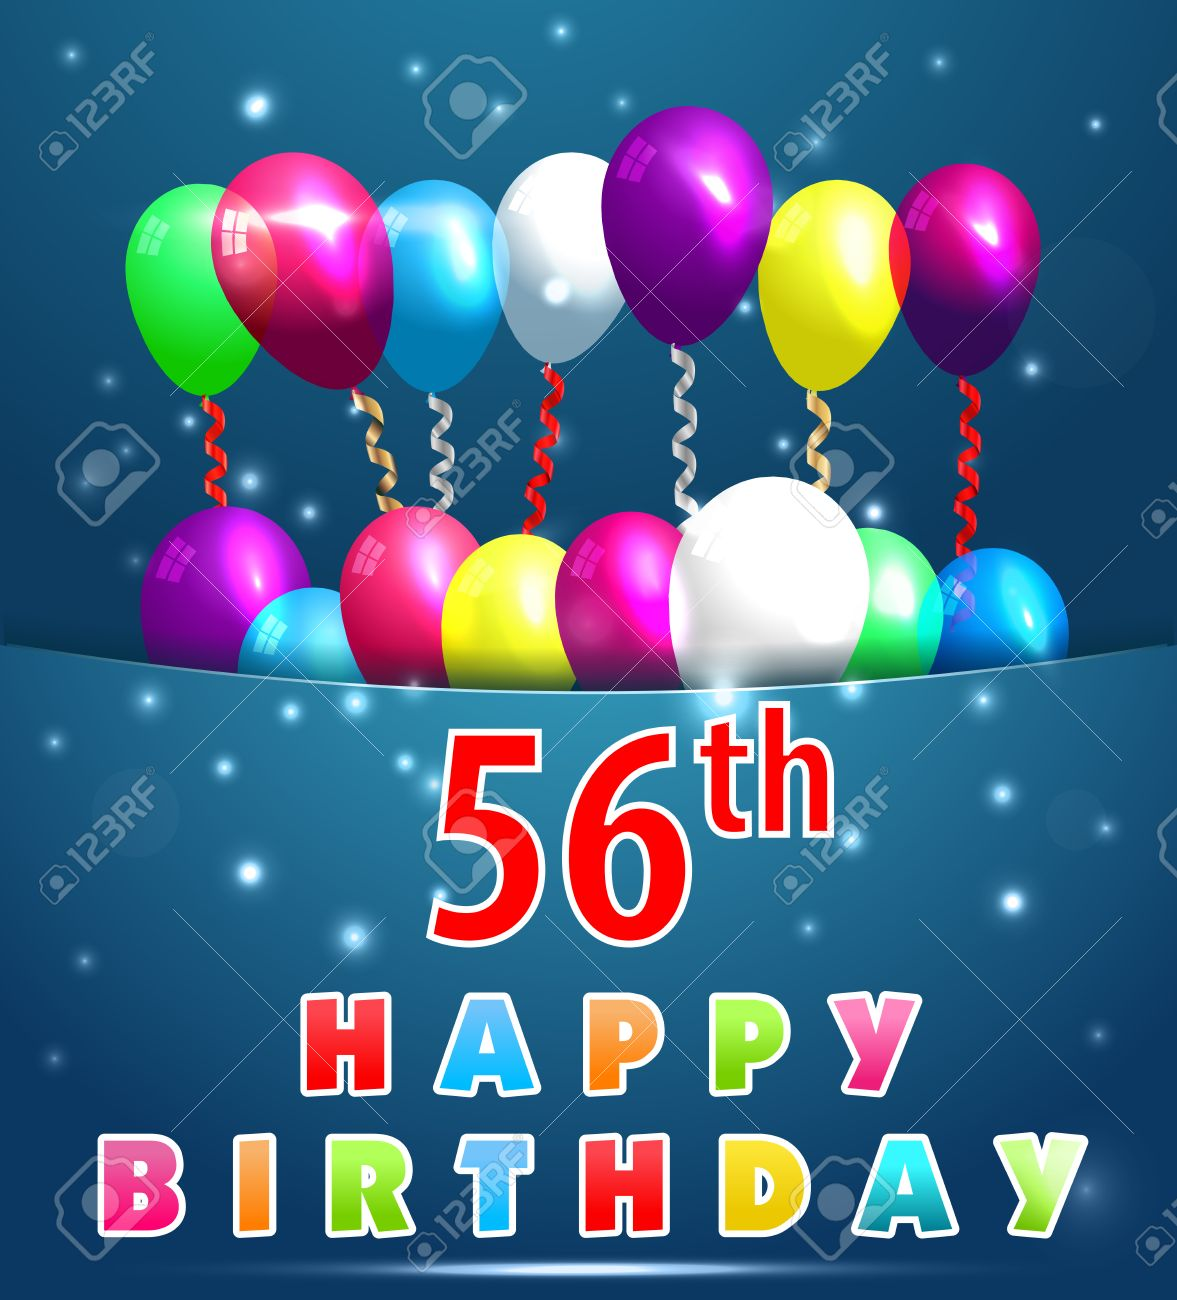 56 Year Happy Birthday Card With Balloons And Ribbons 56th Stock Vector